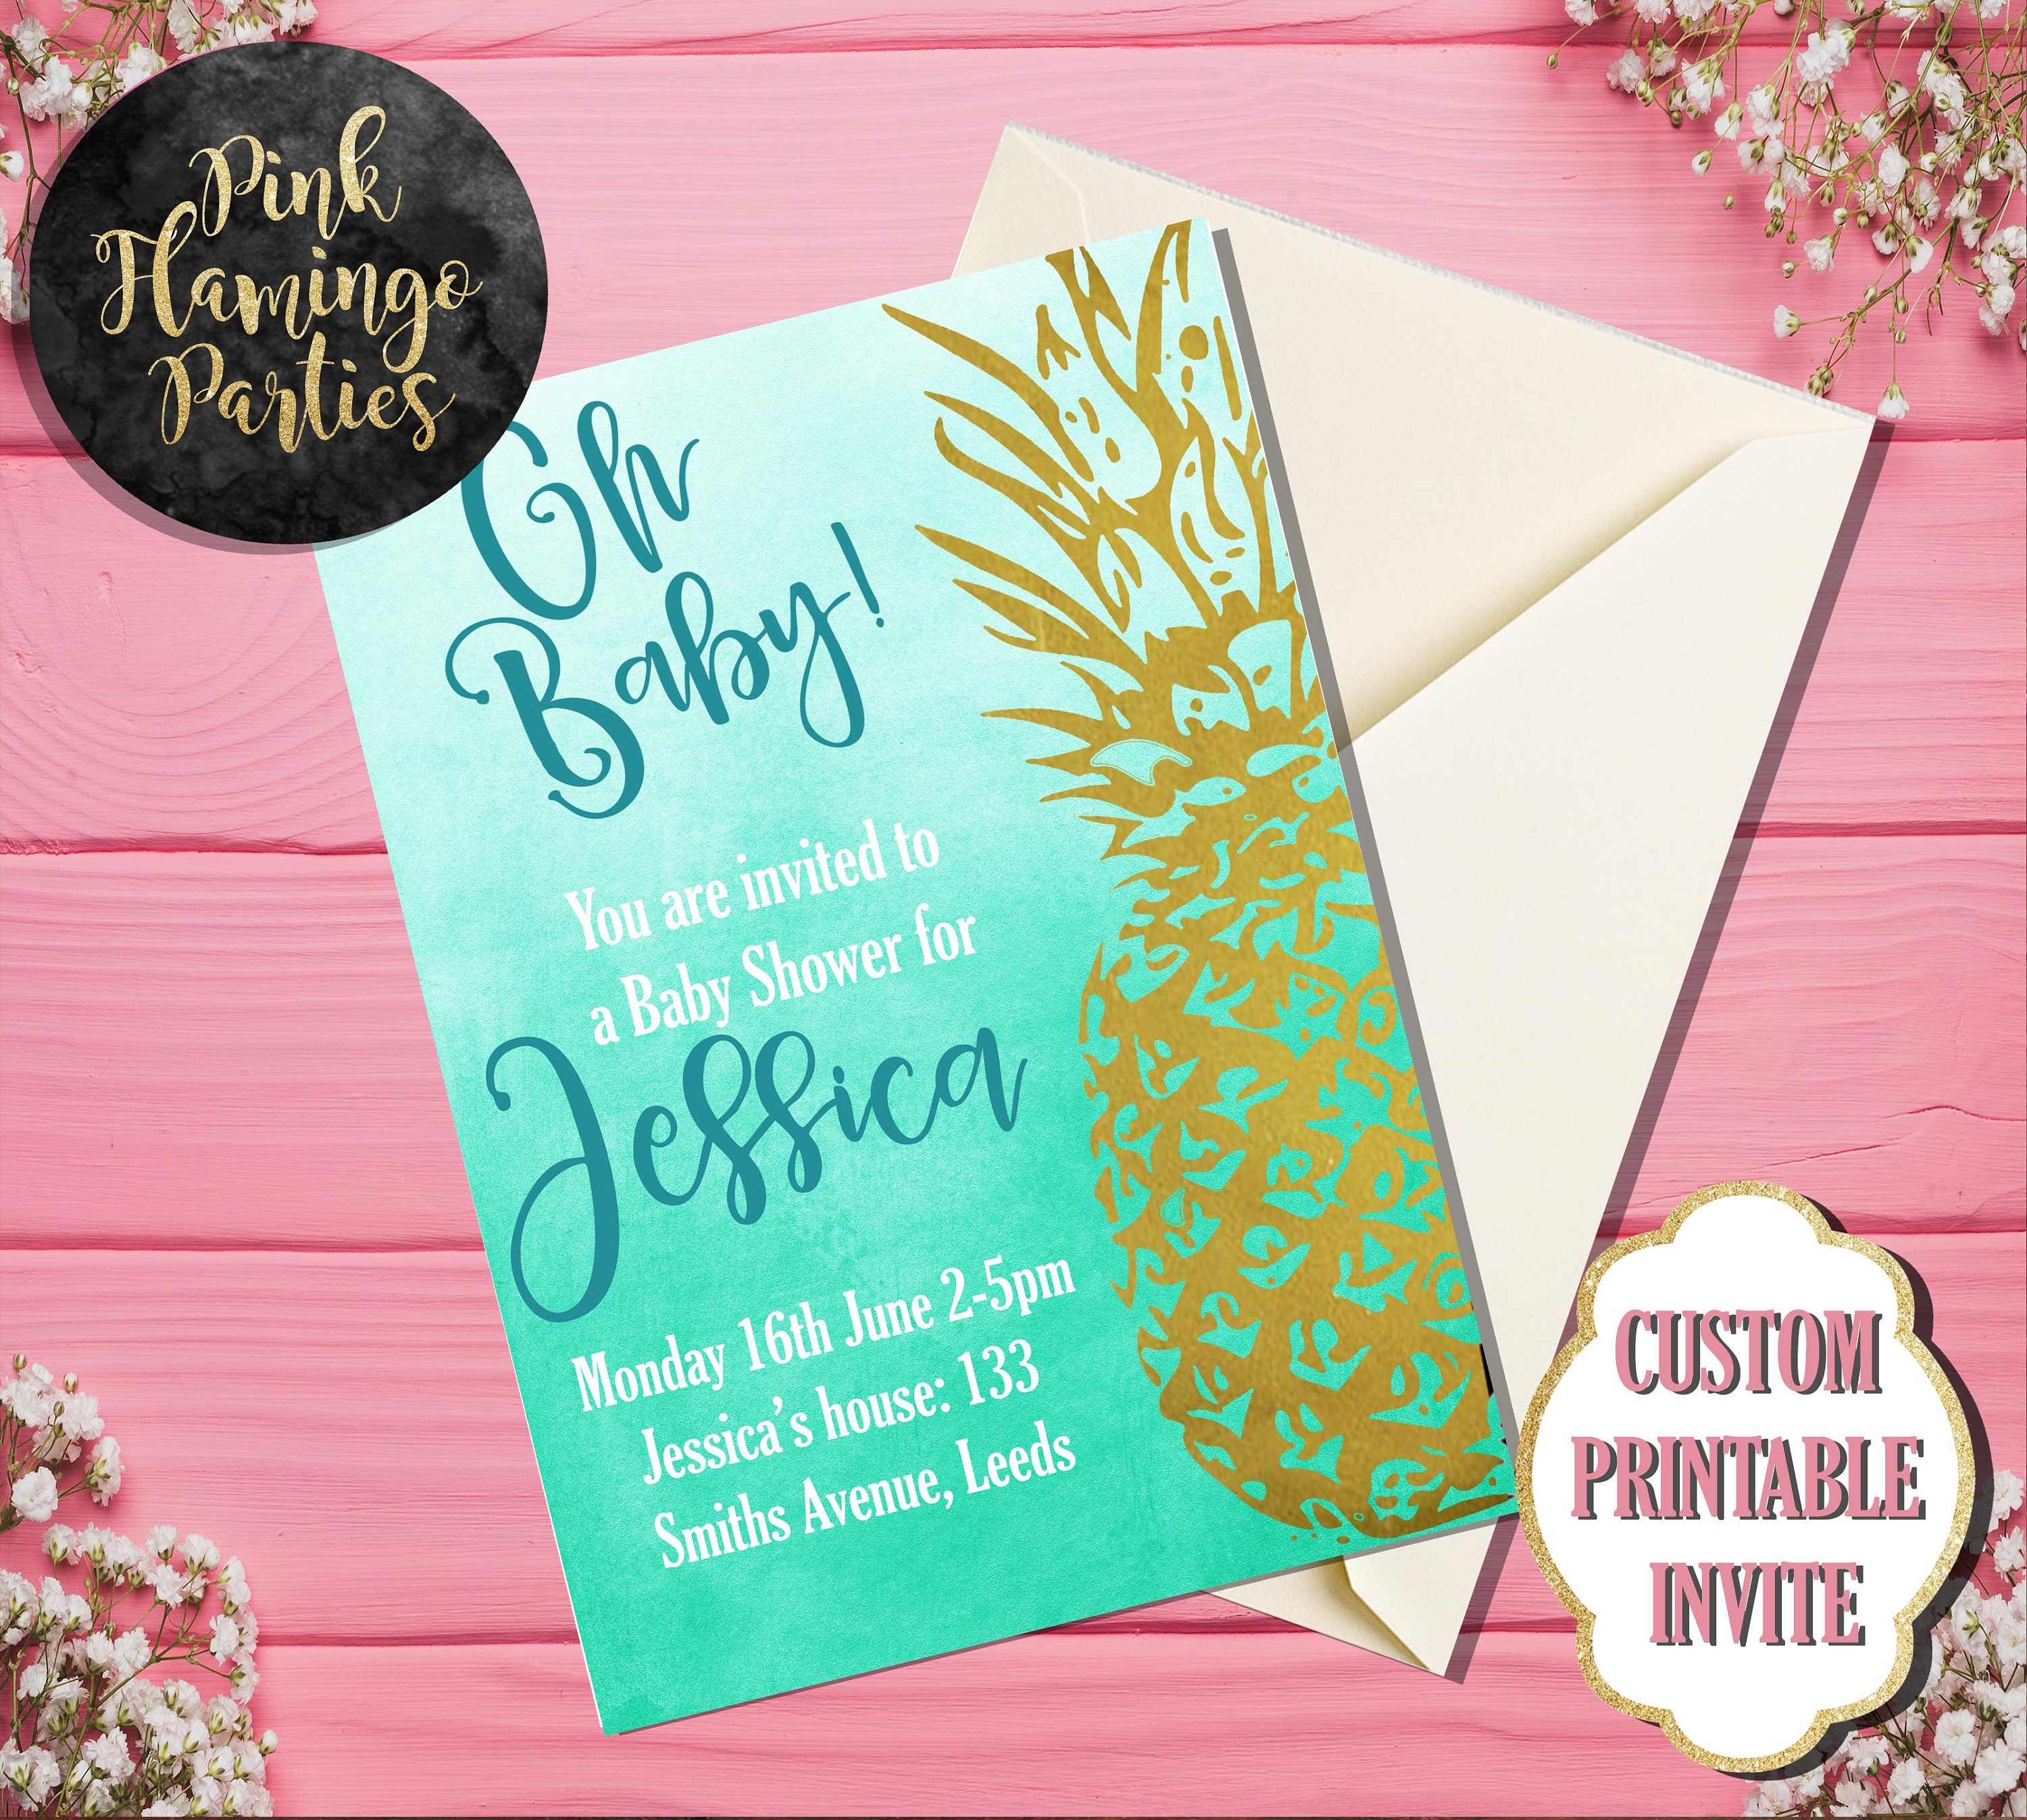 Gold Glitter Pineapple Tropical Baby Shower Invitation, Teal Floral ...